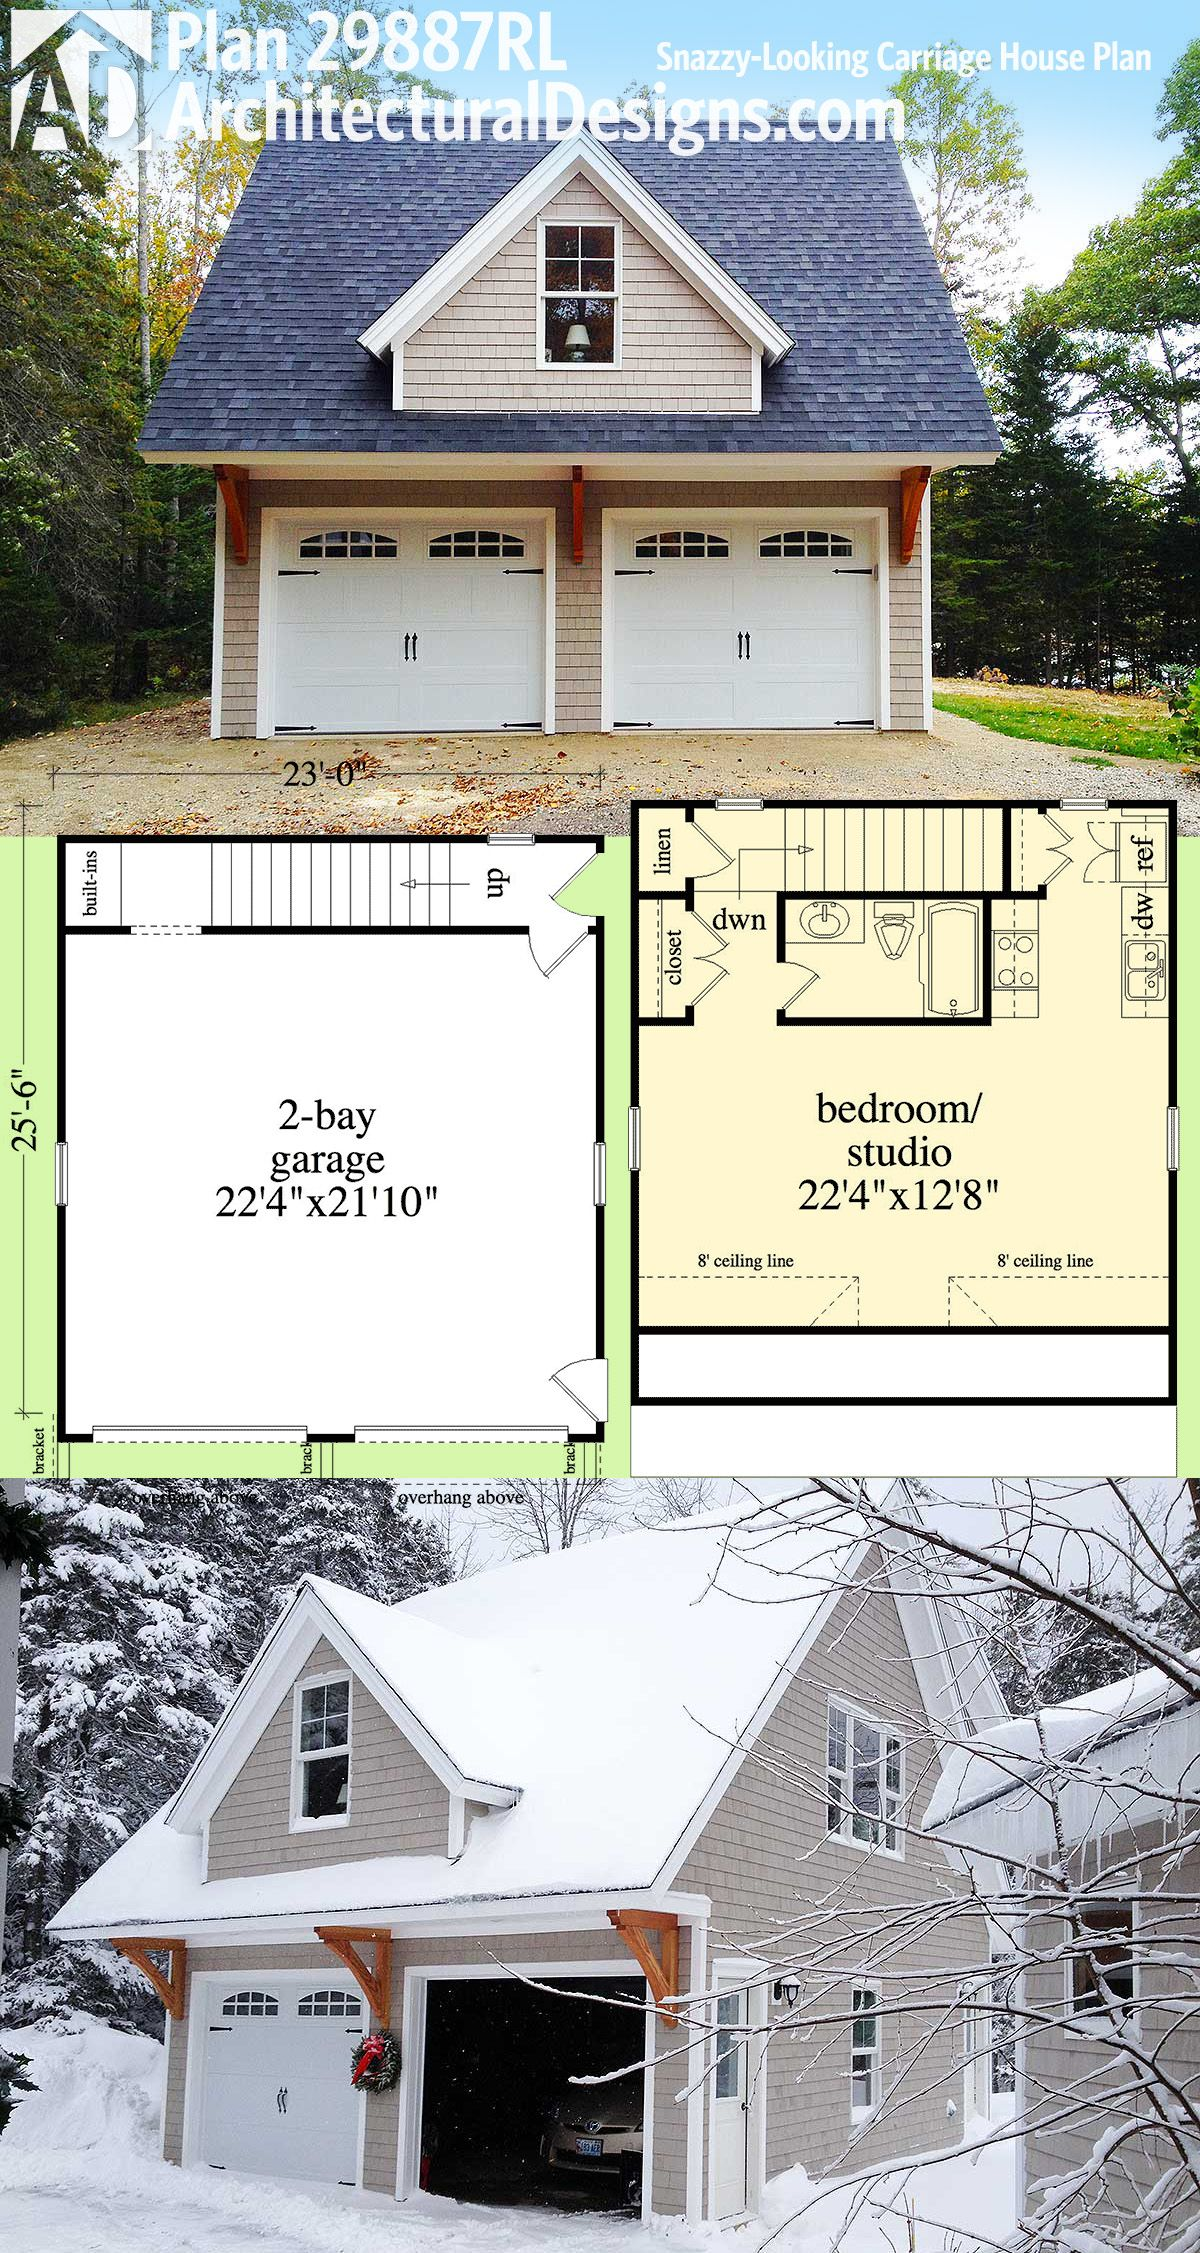 Plan 29887rl snazzy looking carriage house plan Carriage house floor plans